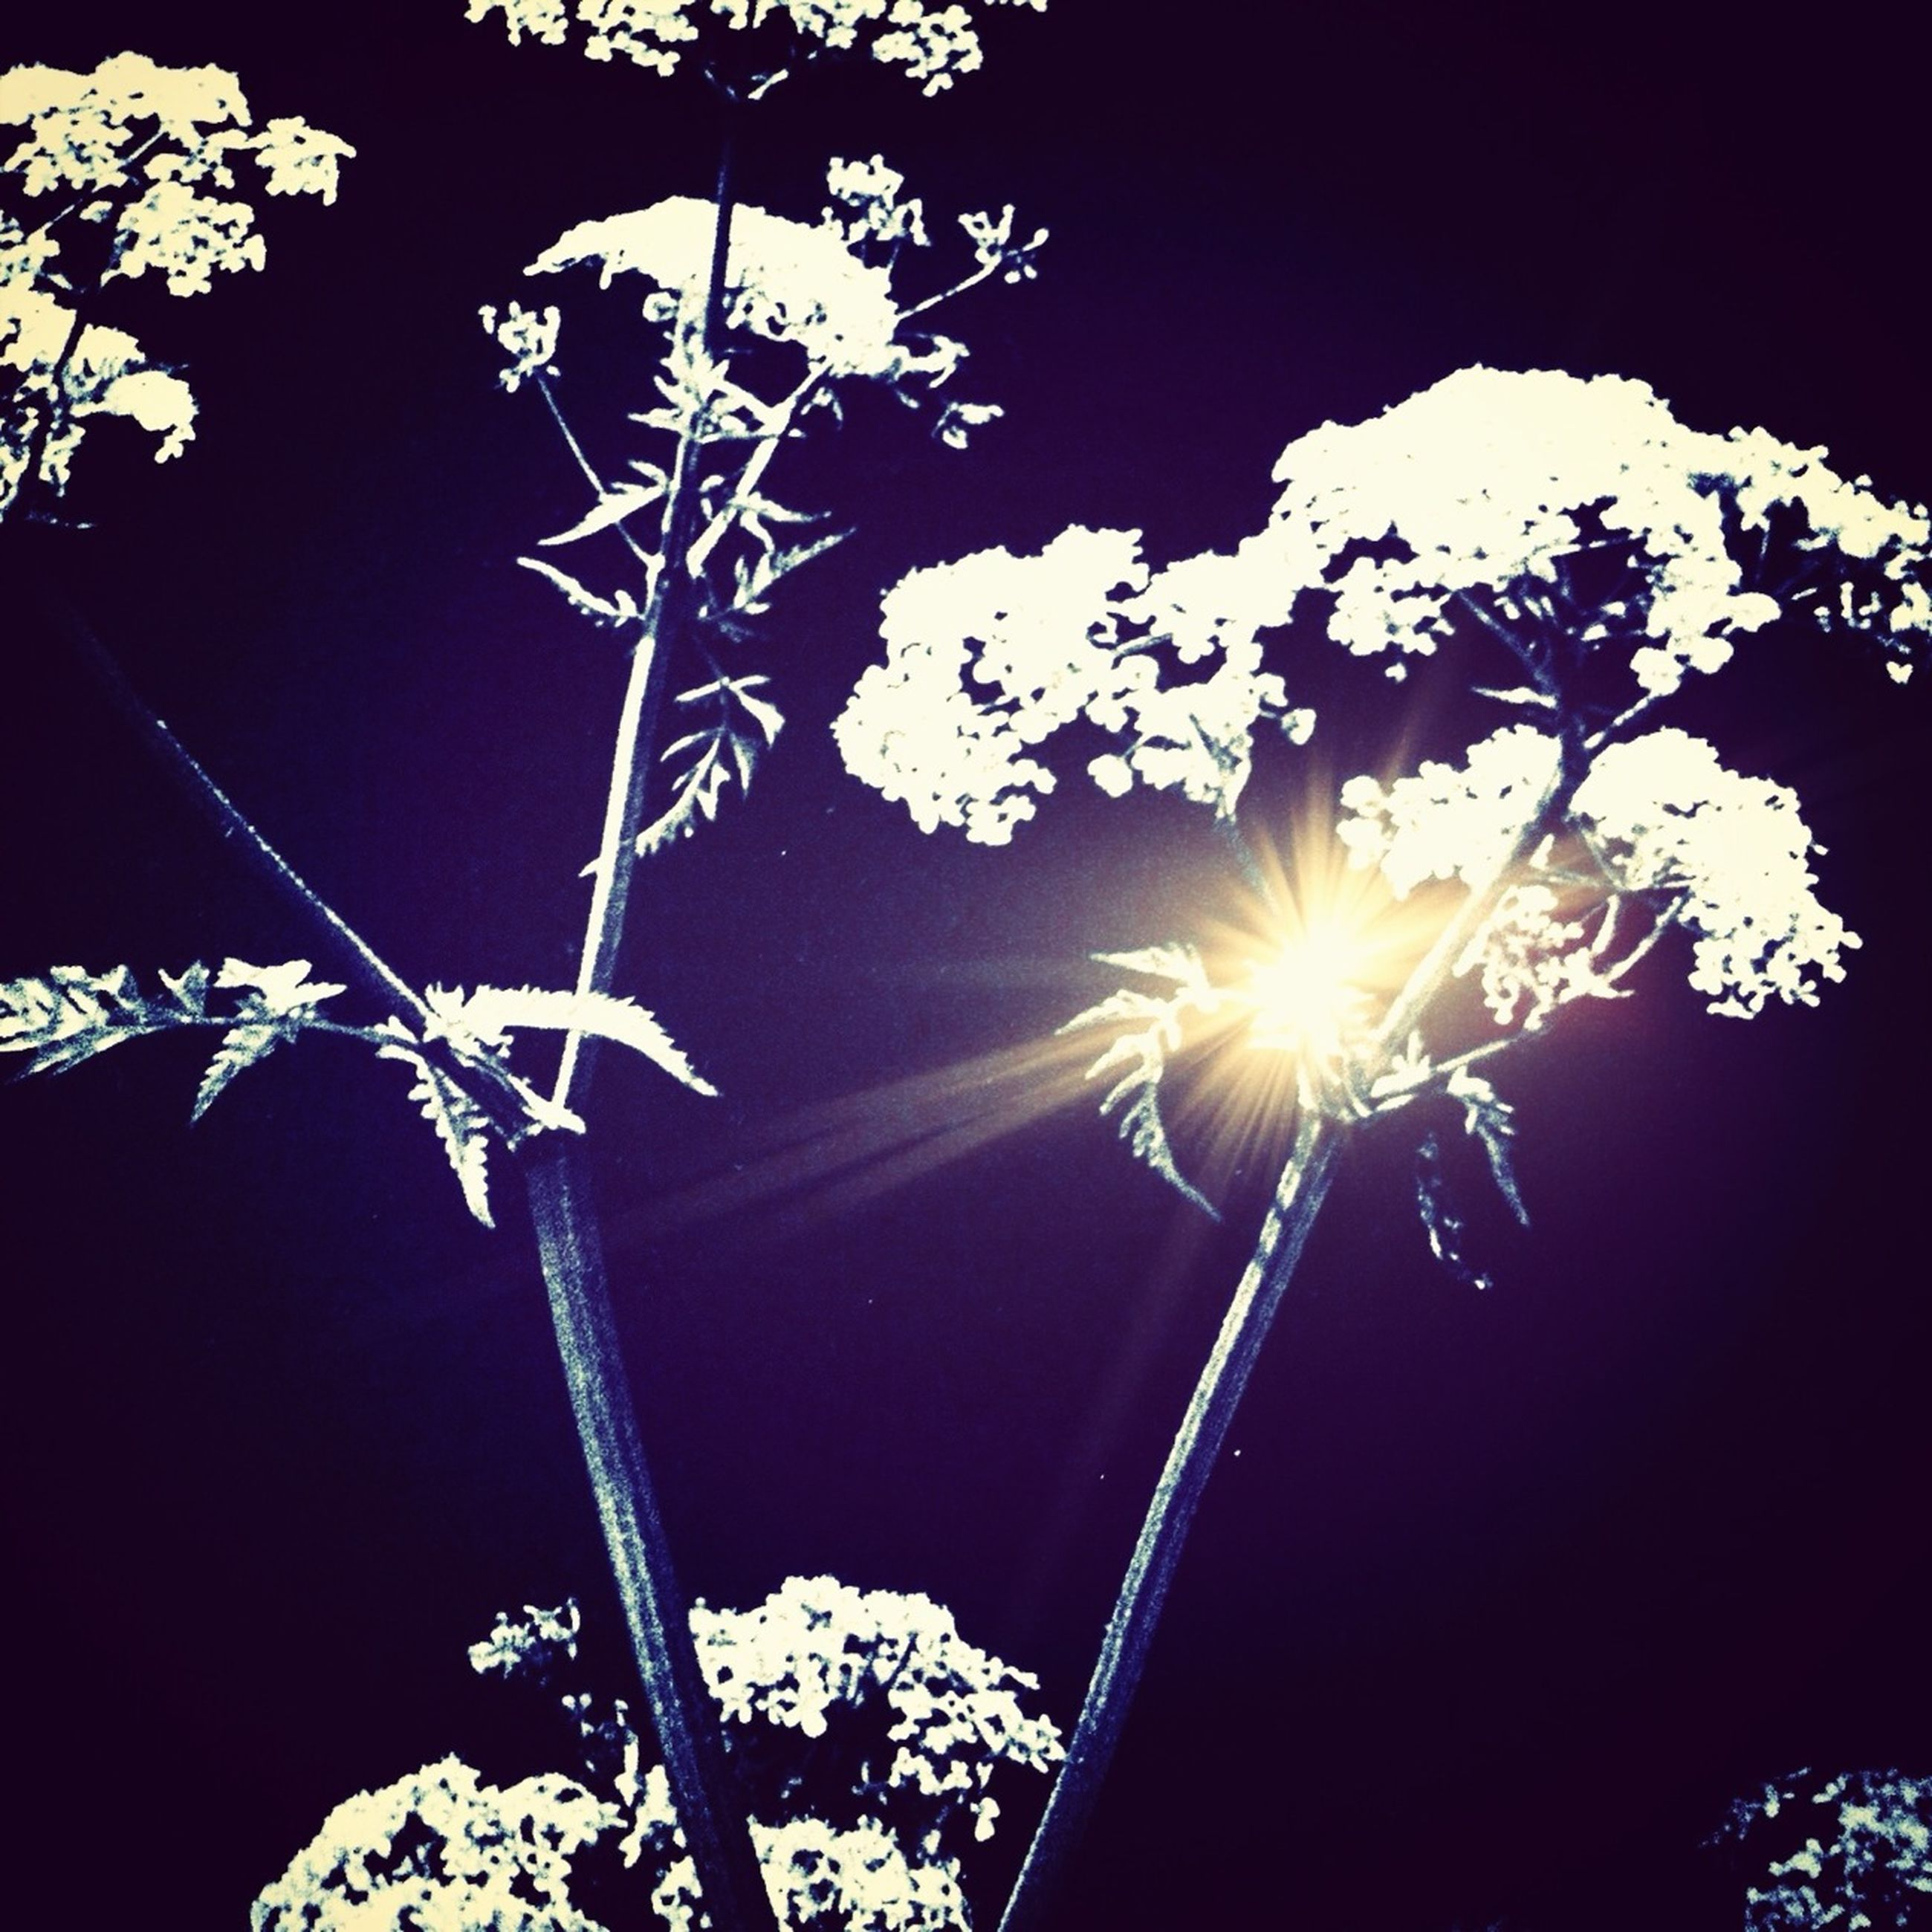 low angle view, night, flower, tree, beauty in nature, nature, branch, growth, sun, sunlight, illuminated, clear sky, close-up, glowing, plant, sunbeam, sky, lens flare, outdoors, no people